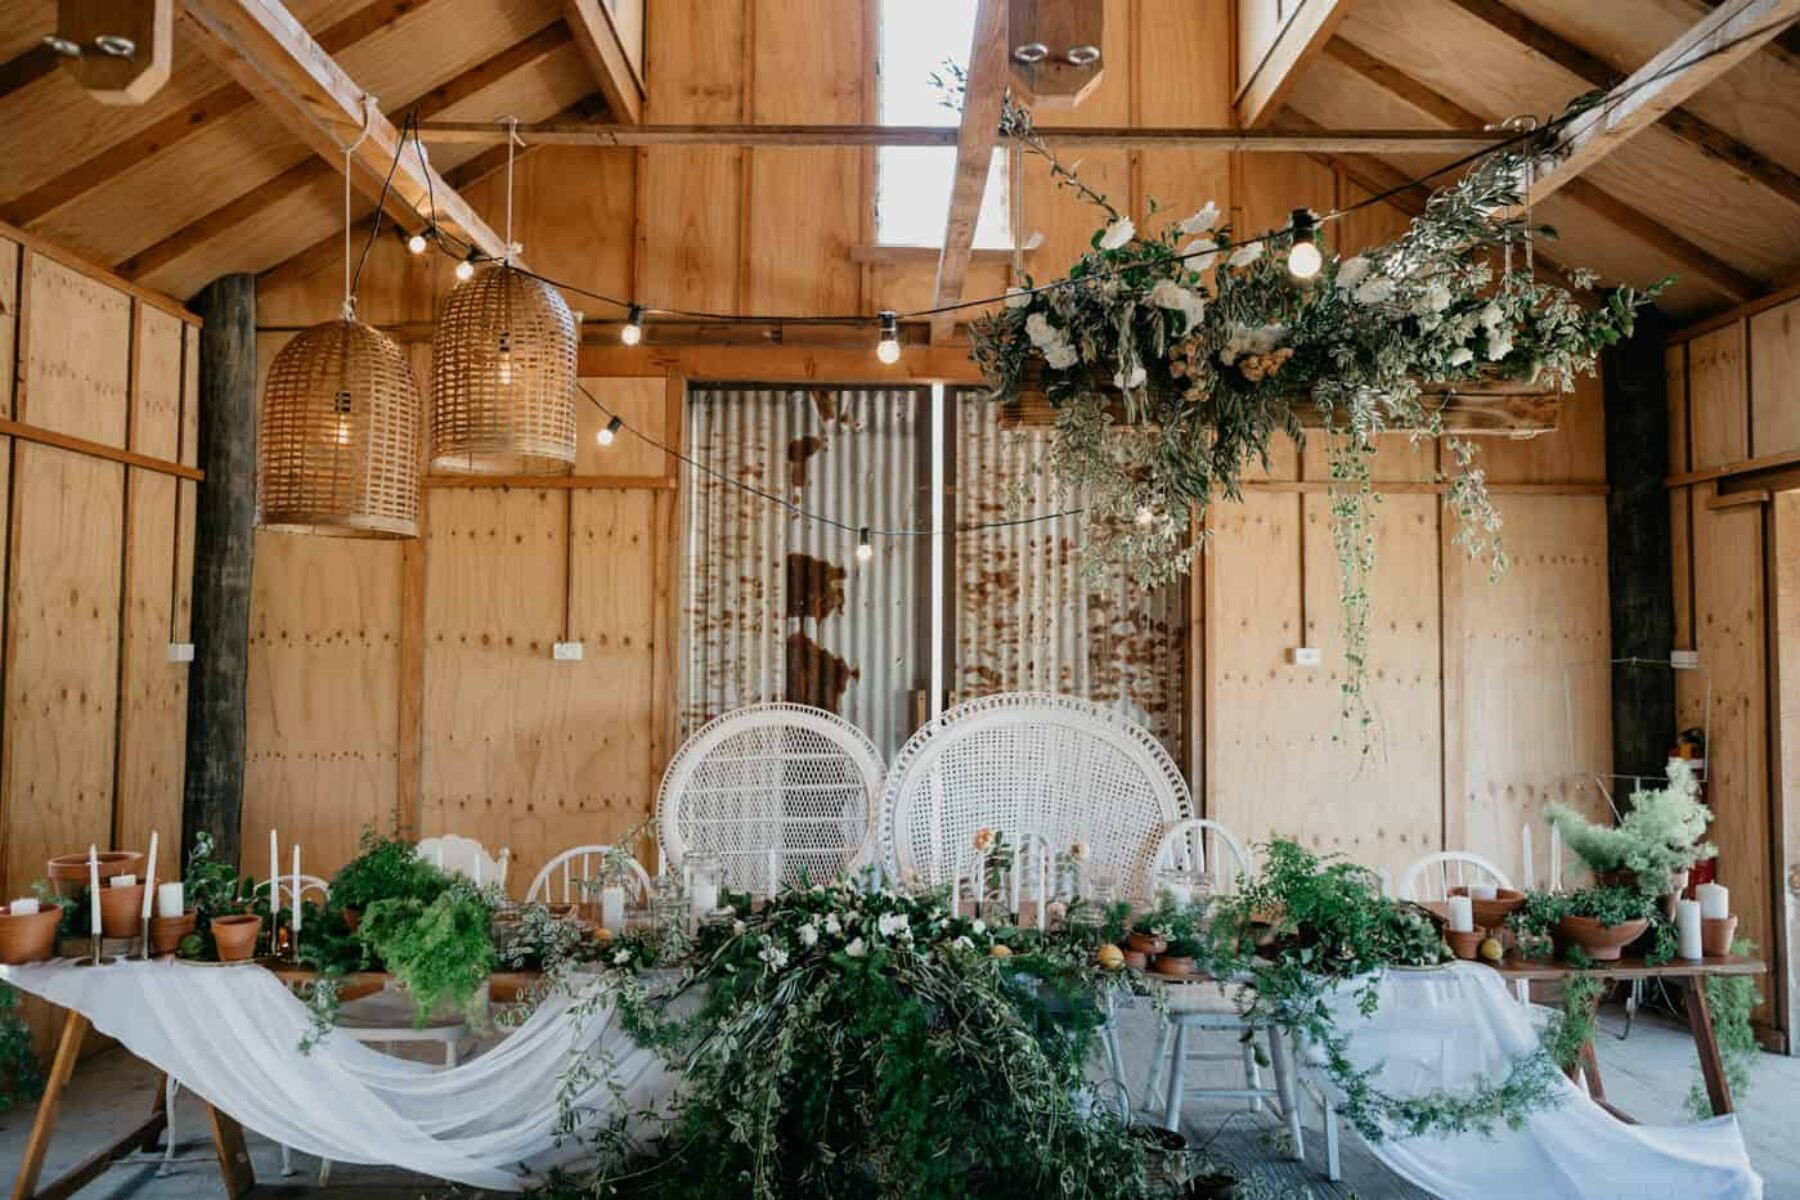 rustic barn wedding at Meribee House - photography by Mitch Pohl